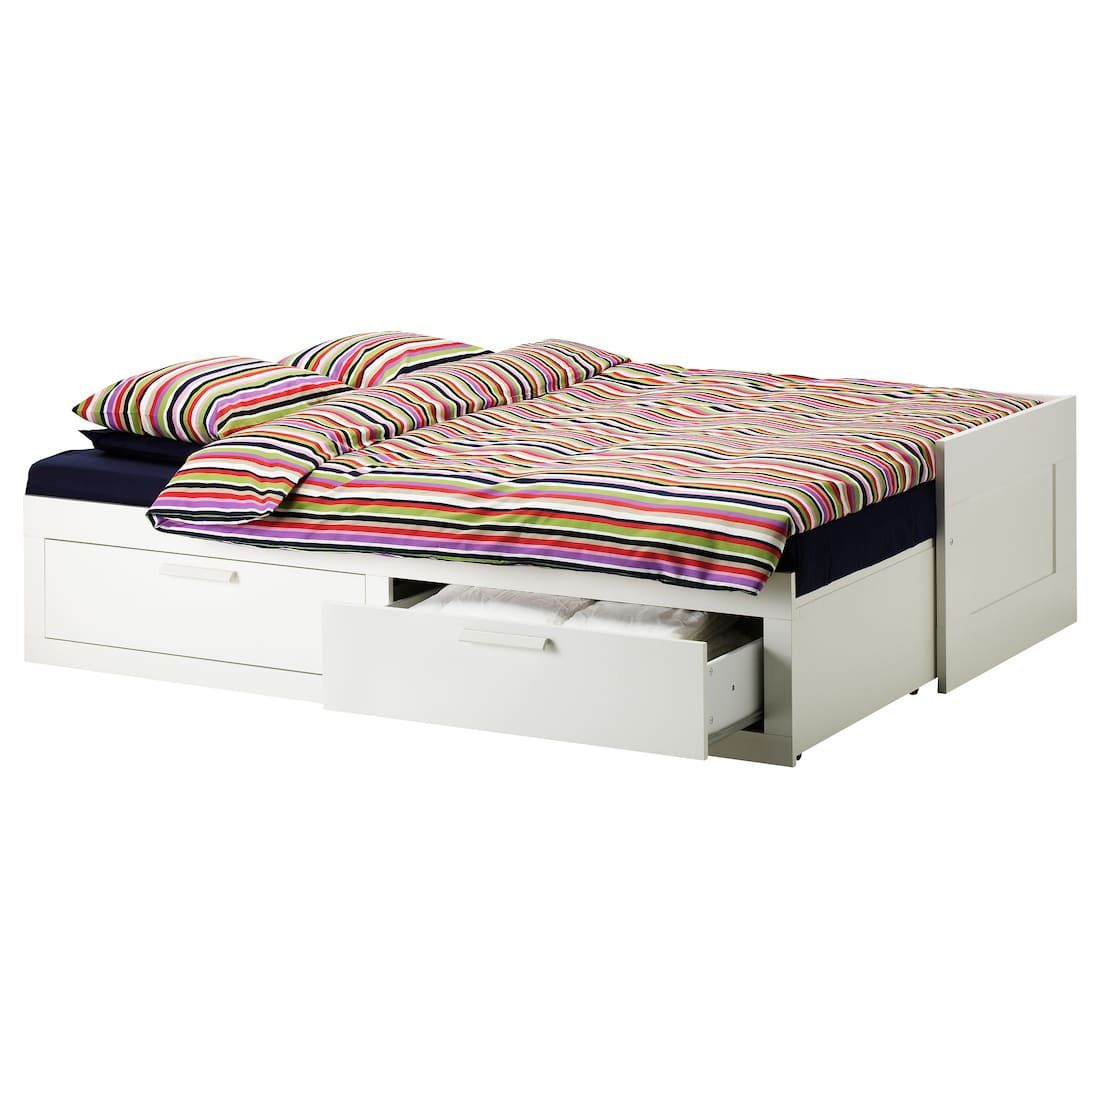 Brimnes Daybed With 2 Drawers 2 Mattresses White Meistervik Firm Twin Ikea Daybed With Storage Full Size Daybed Ikea Day Bed Frame